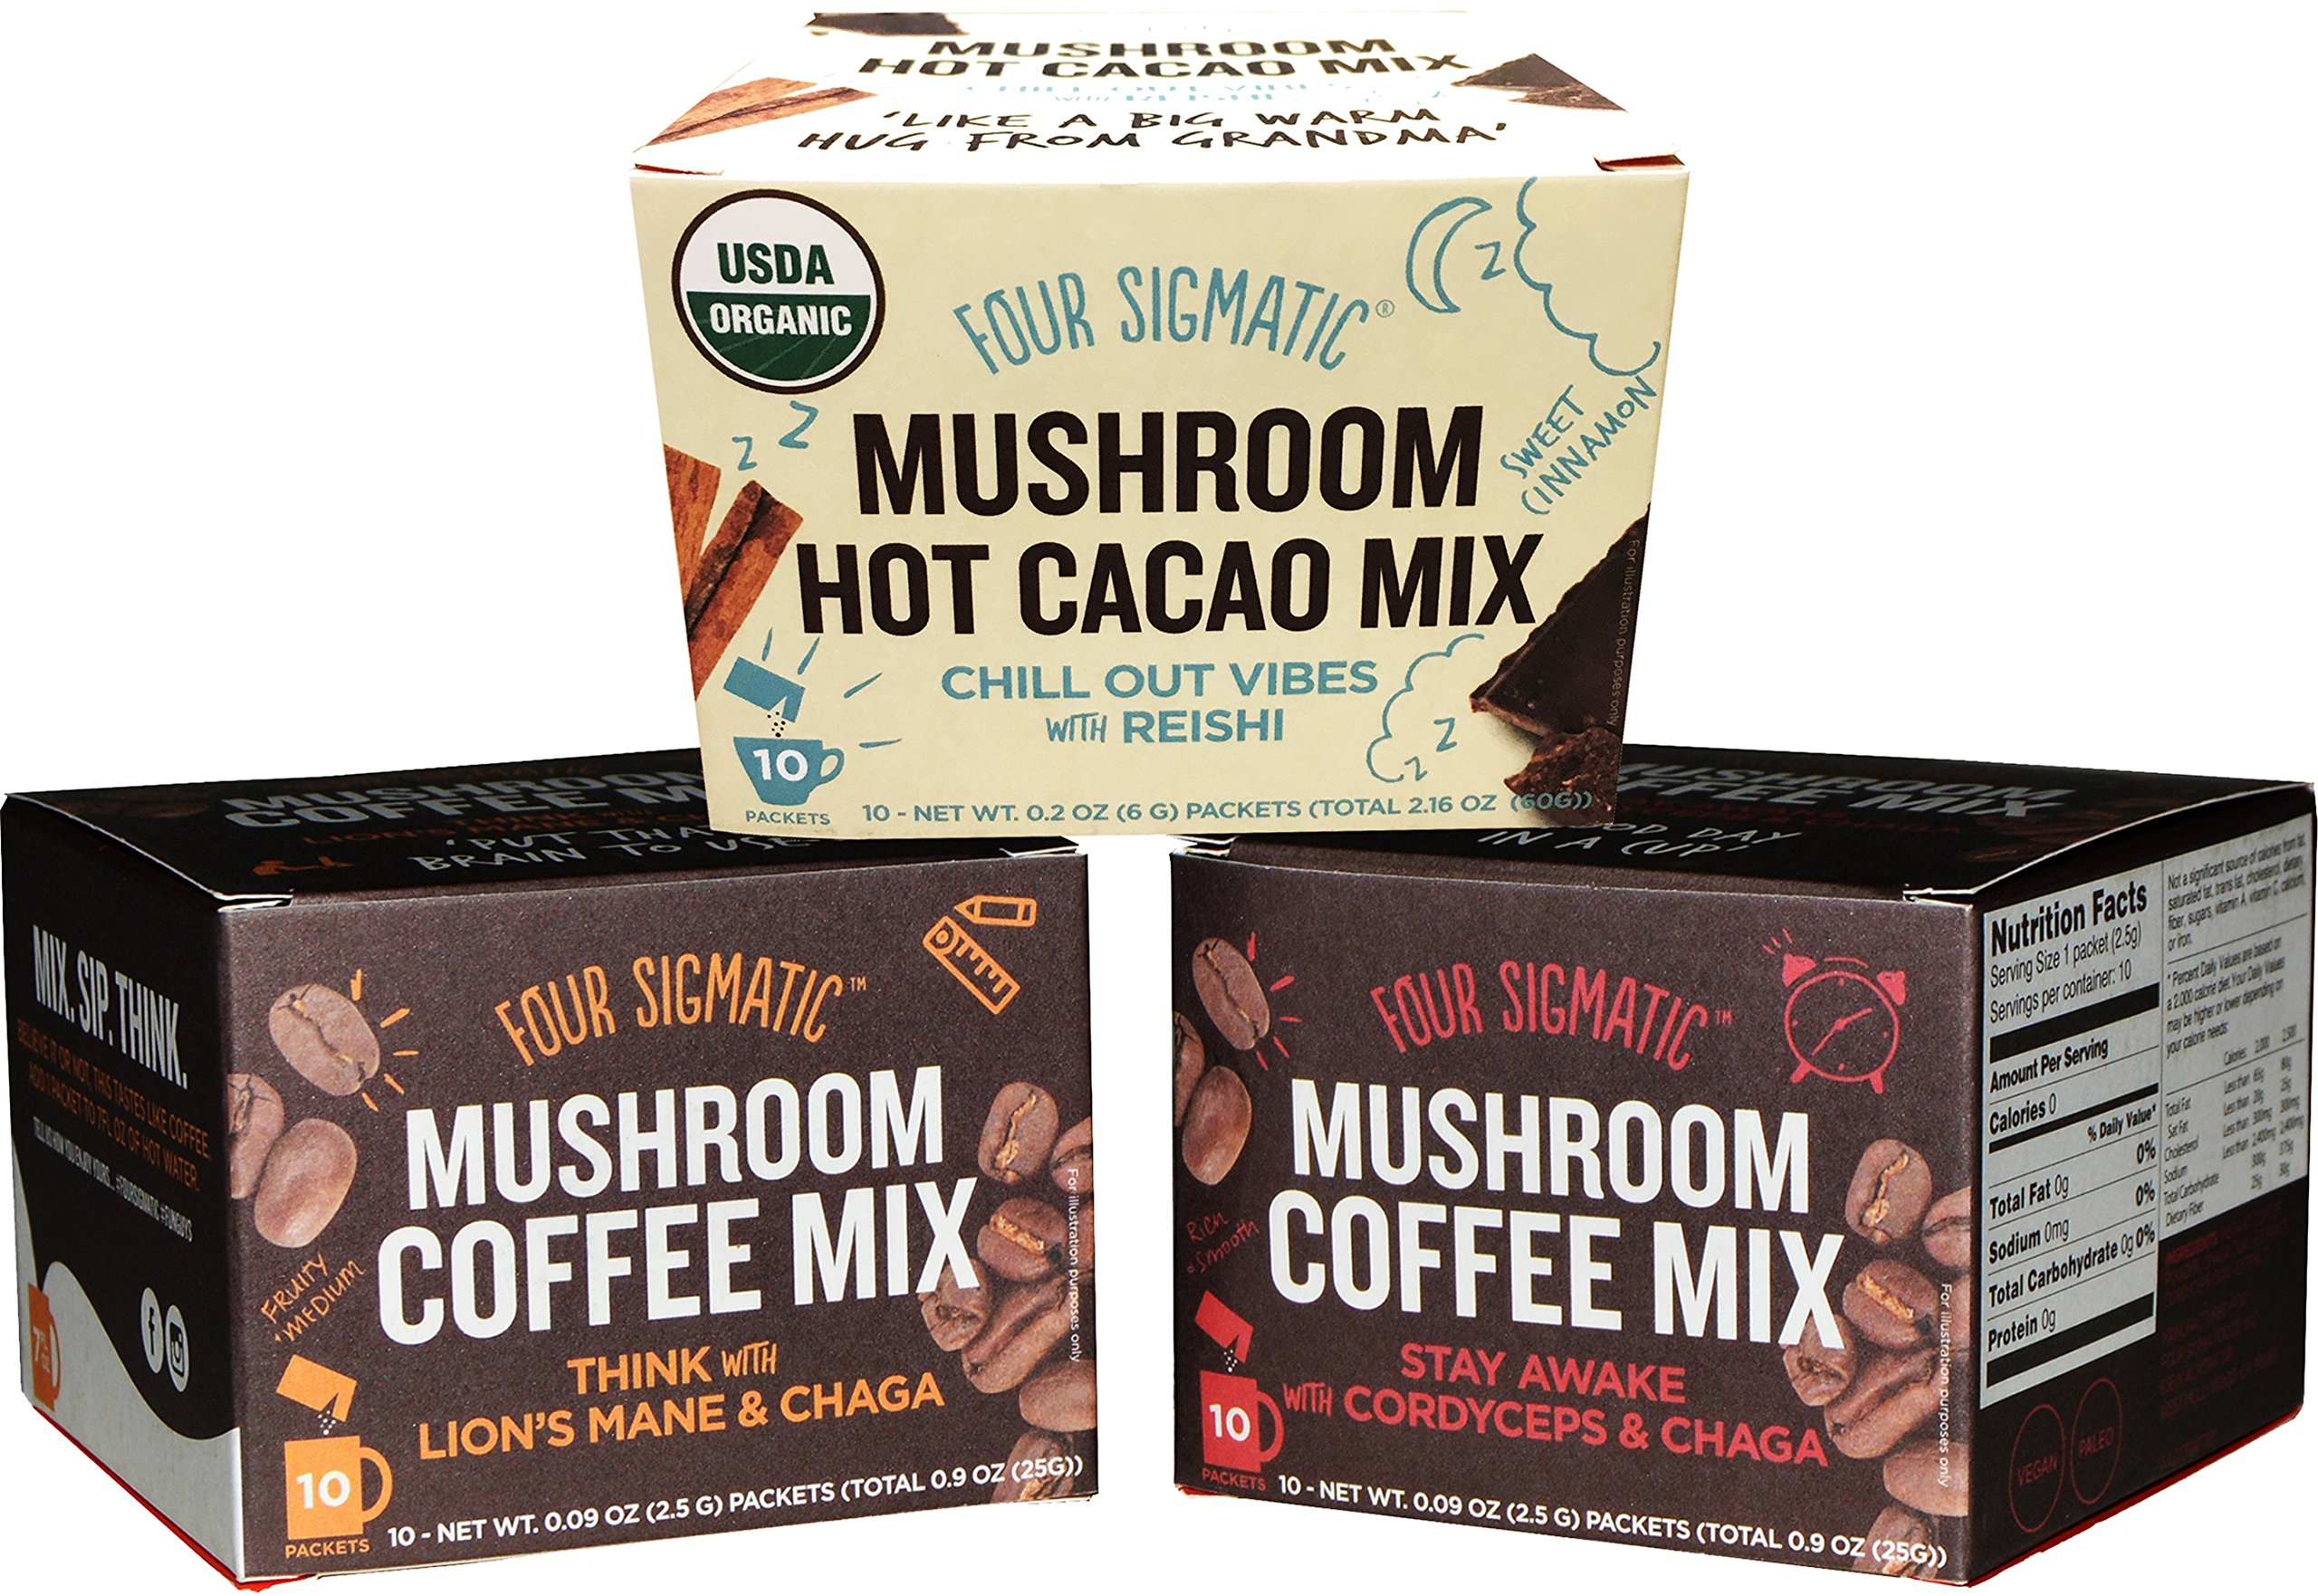 Four Sigmatic Mushroom Coffee and Hot Cacao Sampler Pack of 3 - Lion's Mane Coffee, Cordyceps Coffee, and Reishi Hot Cacao